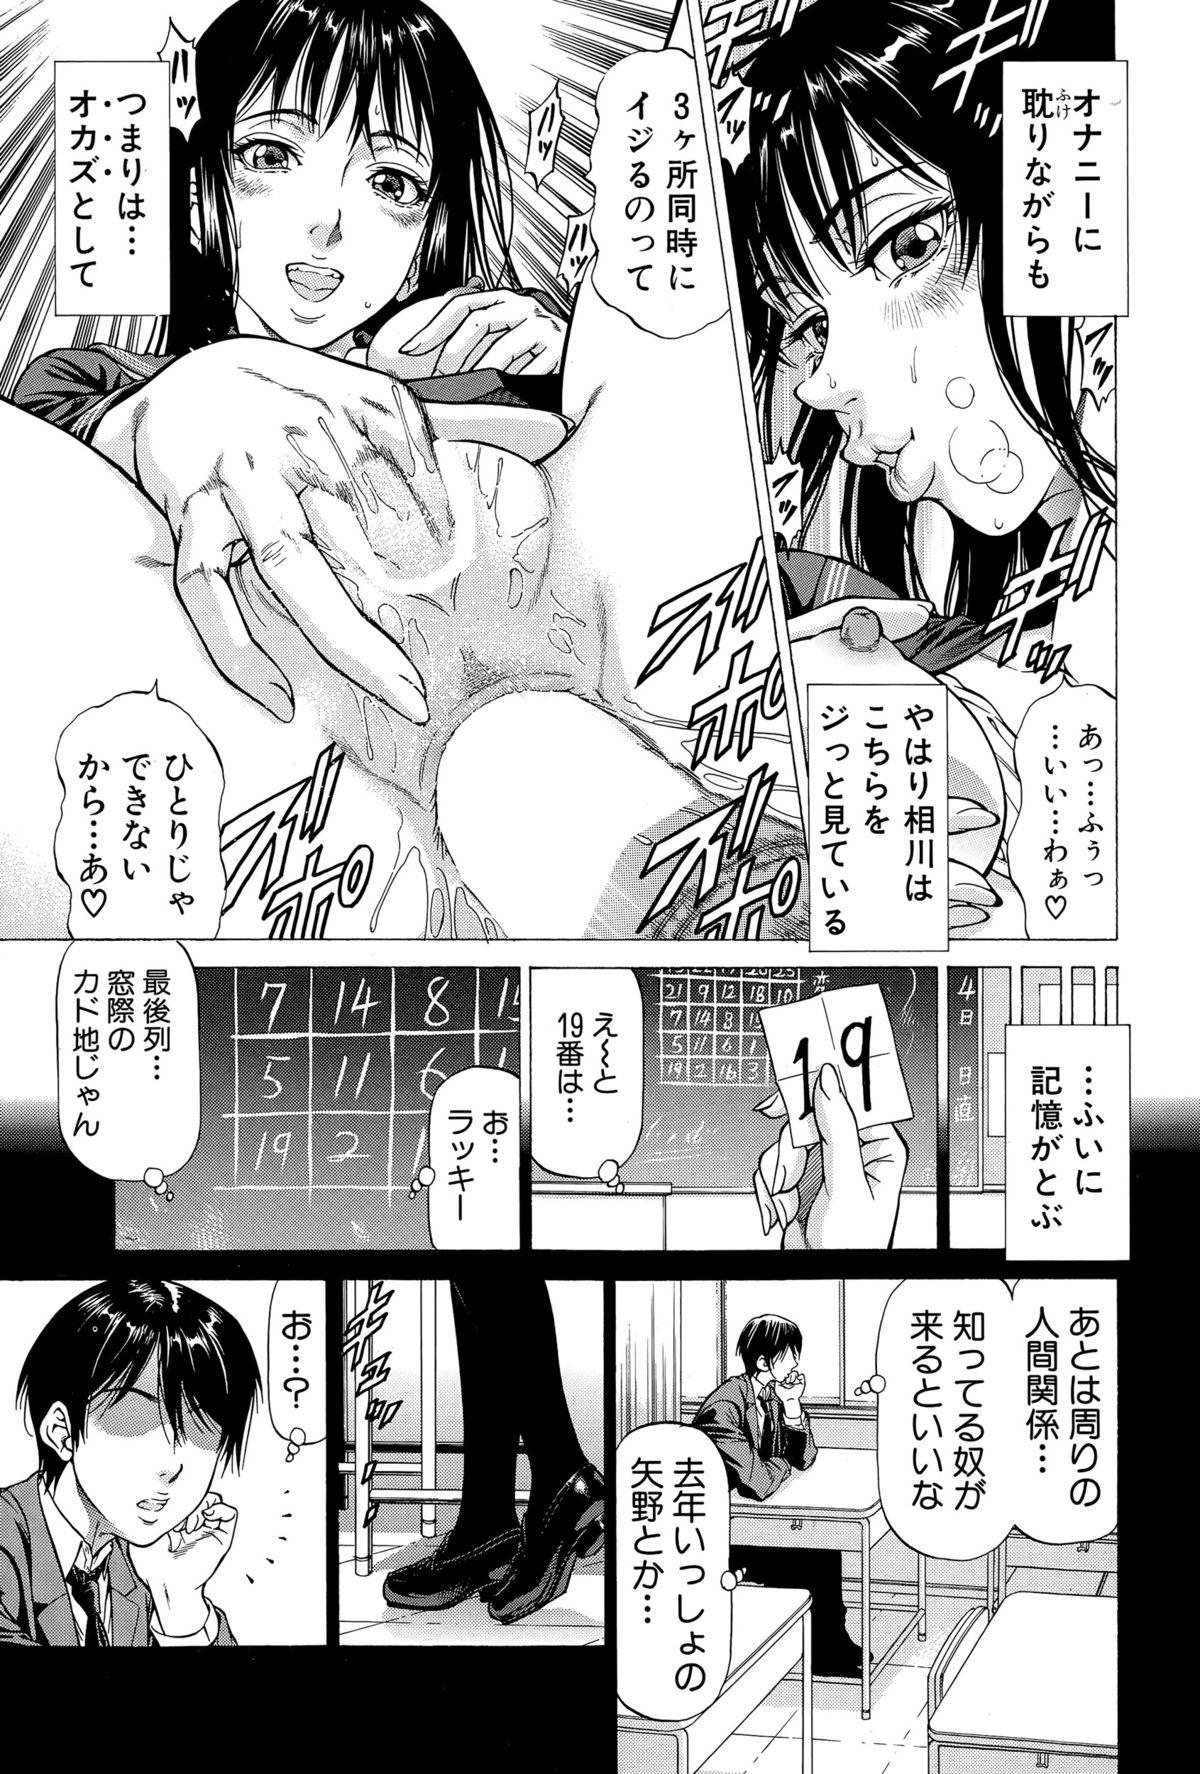 BUSTER COMIC 2015-07 184